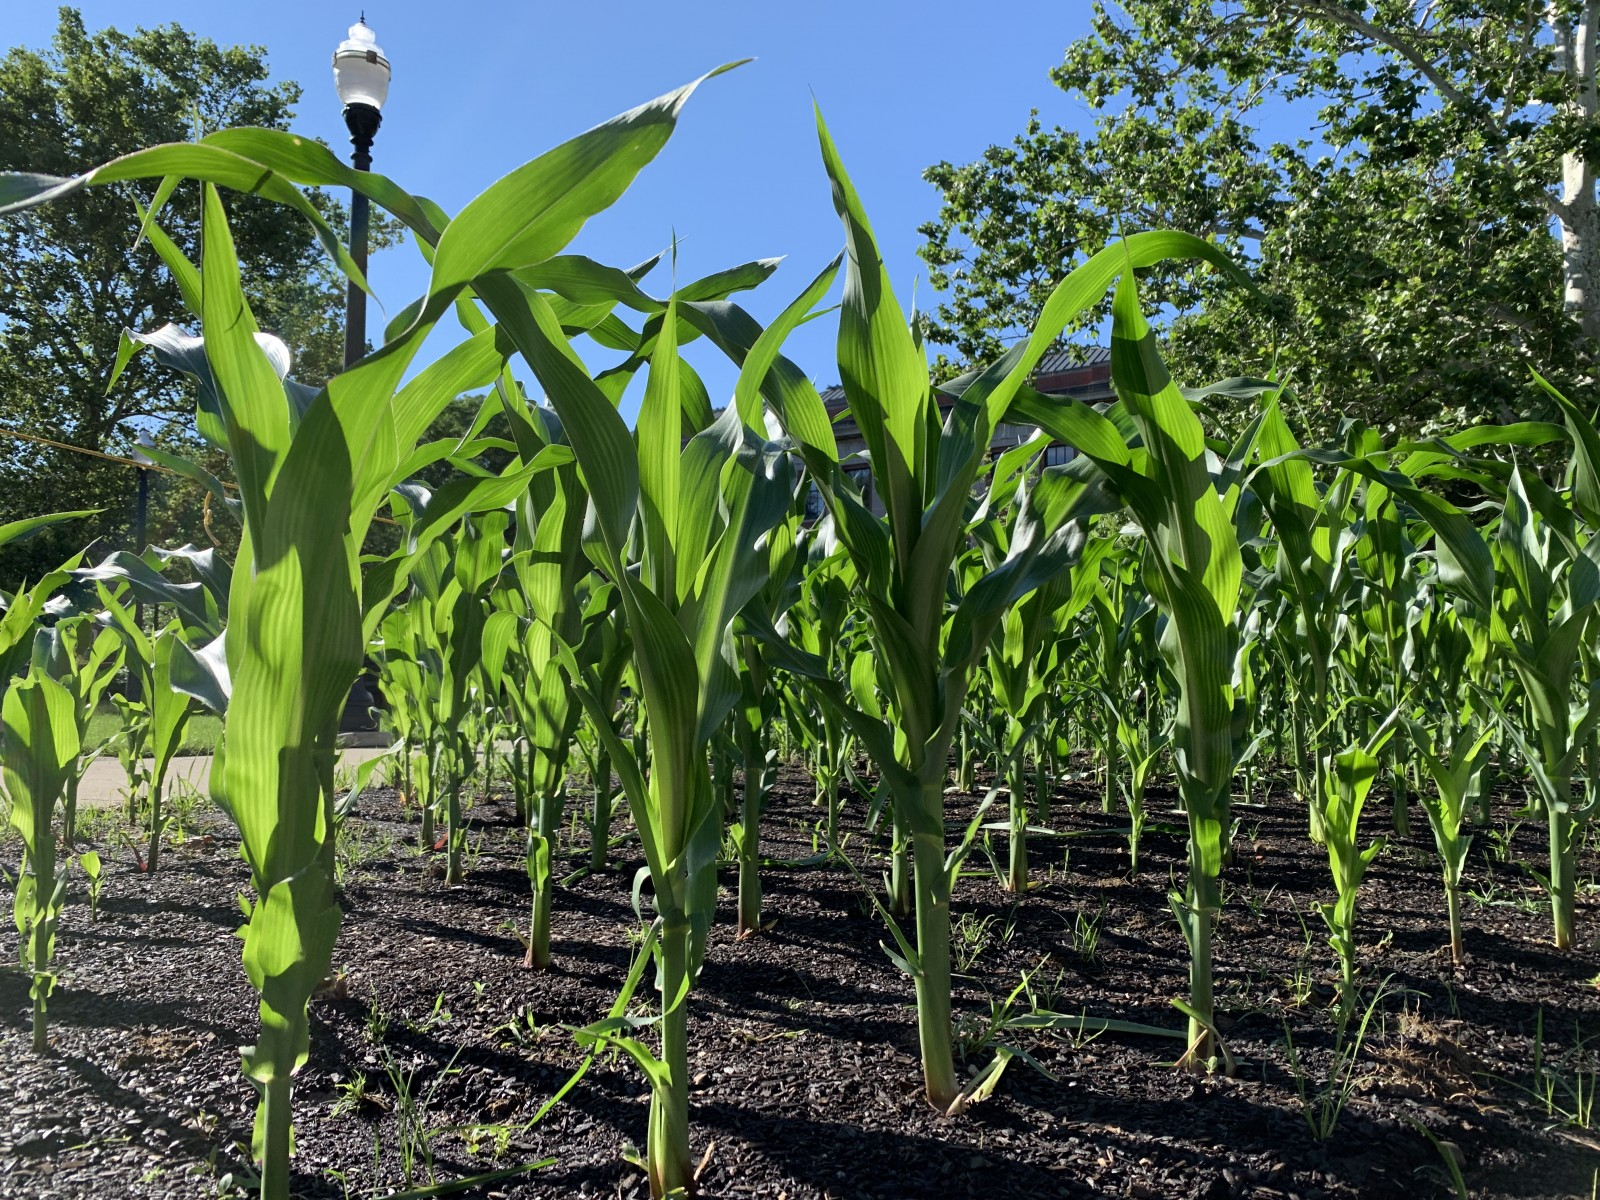 This plot of corn, part of a public research installation, popped up on campus in the spring.